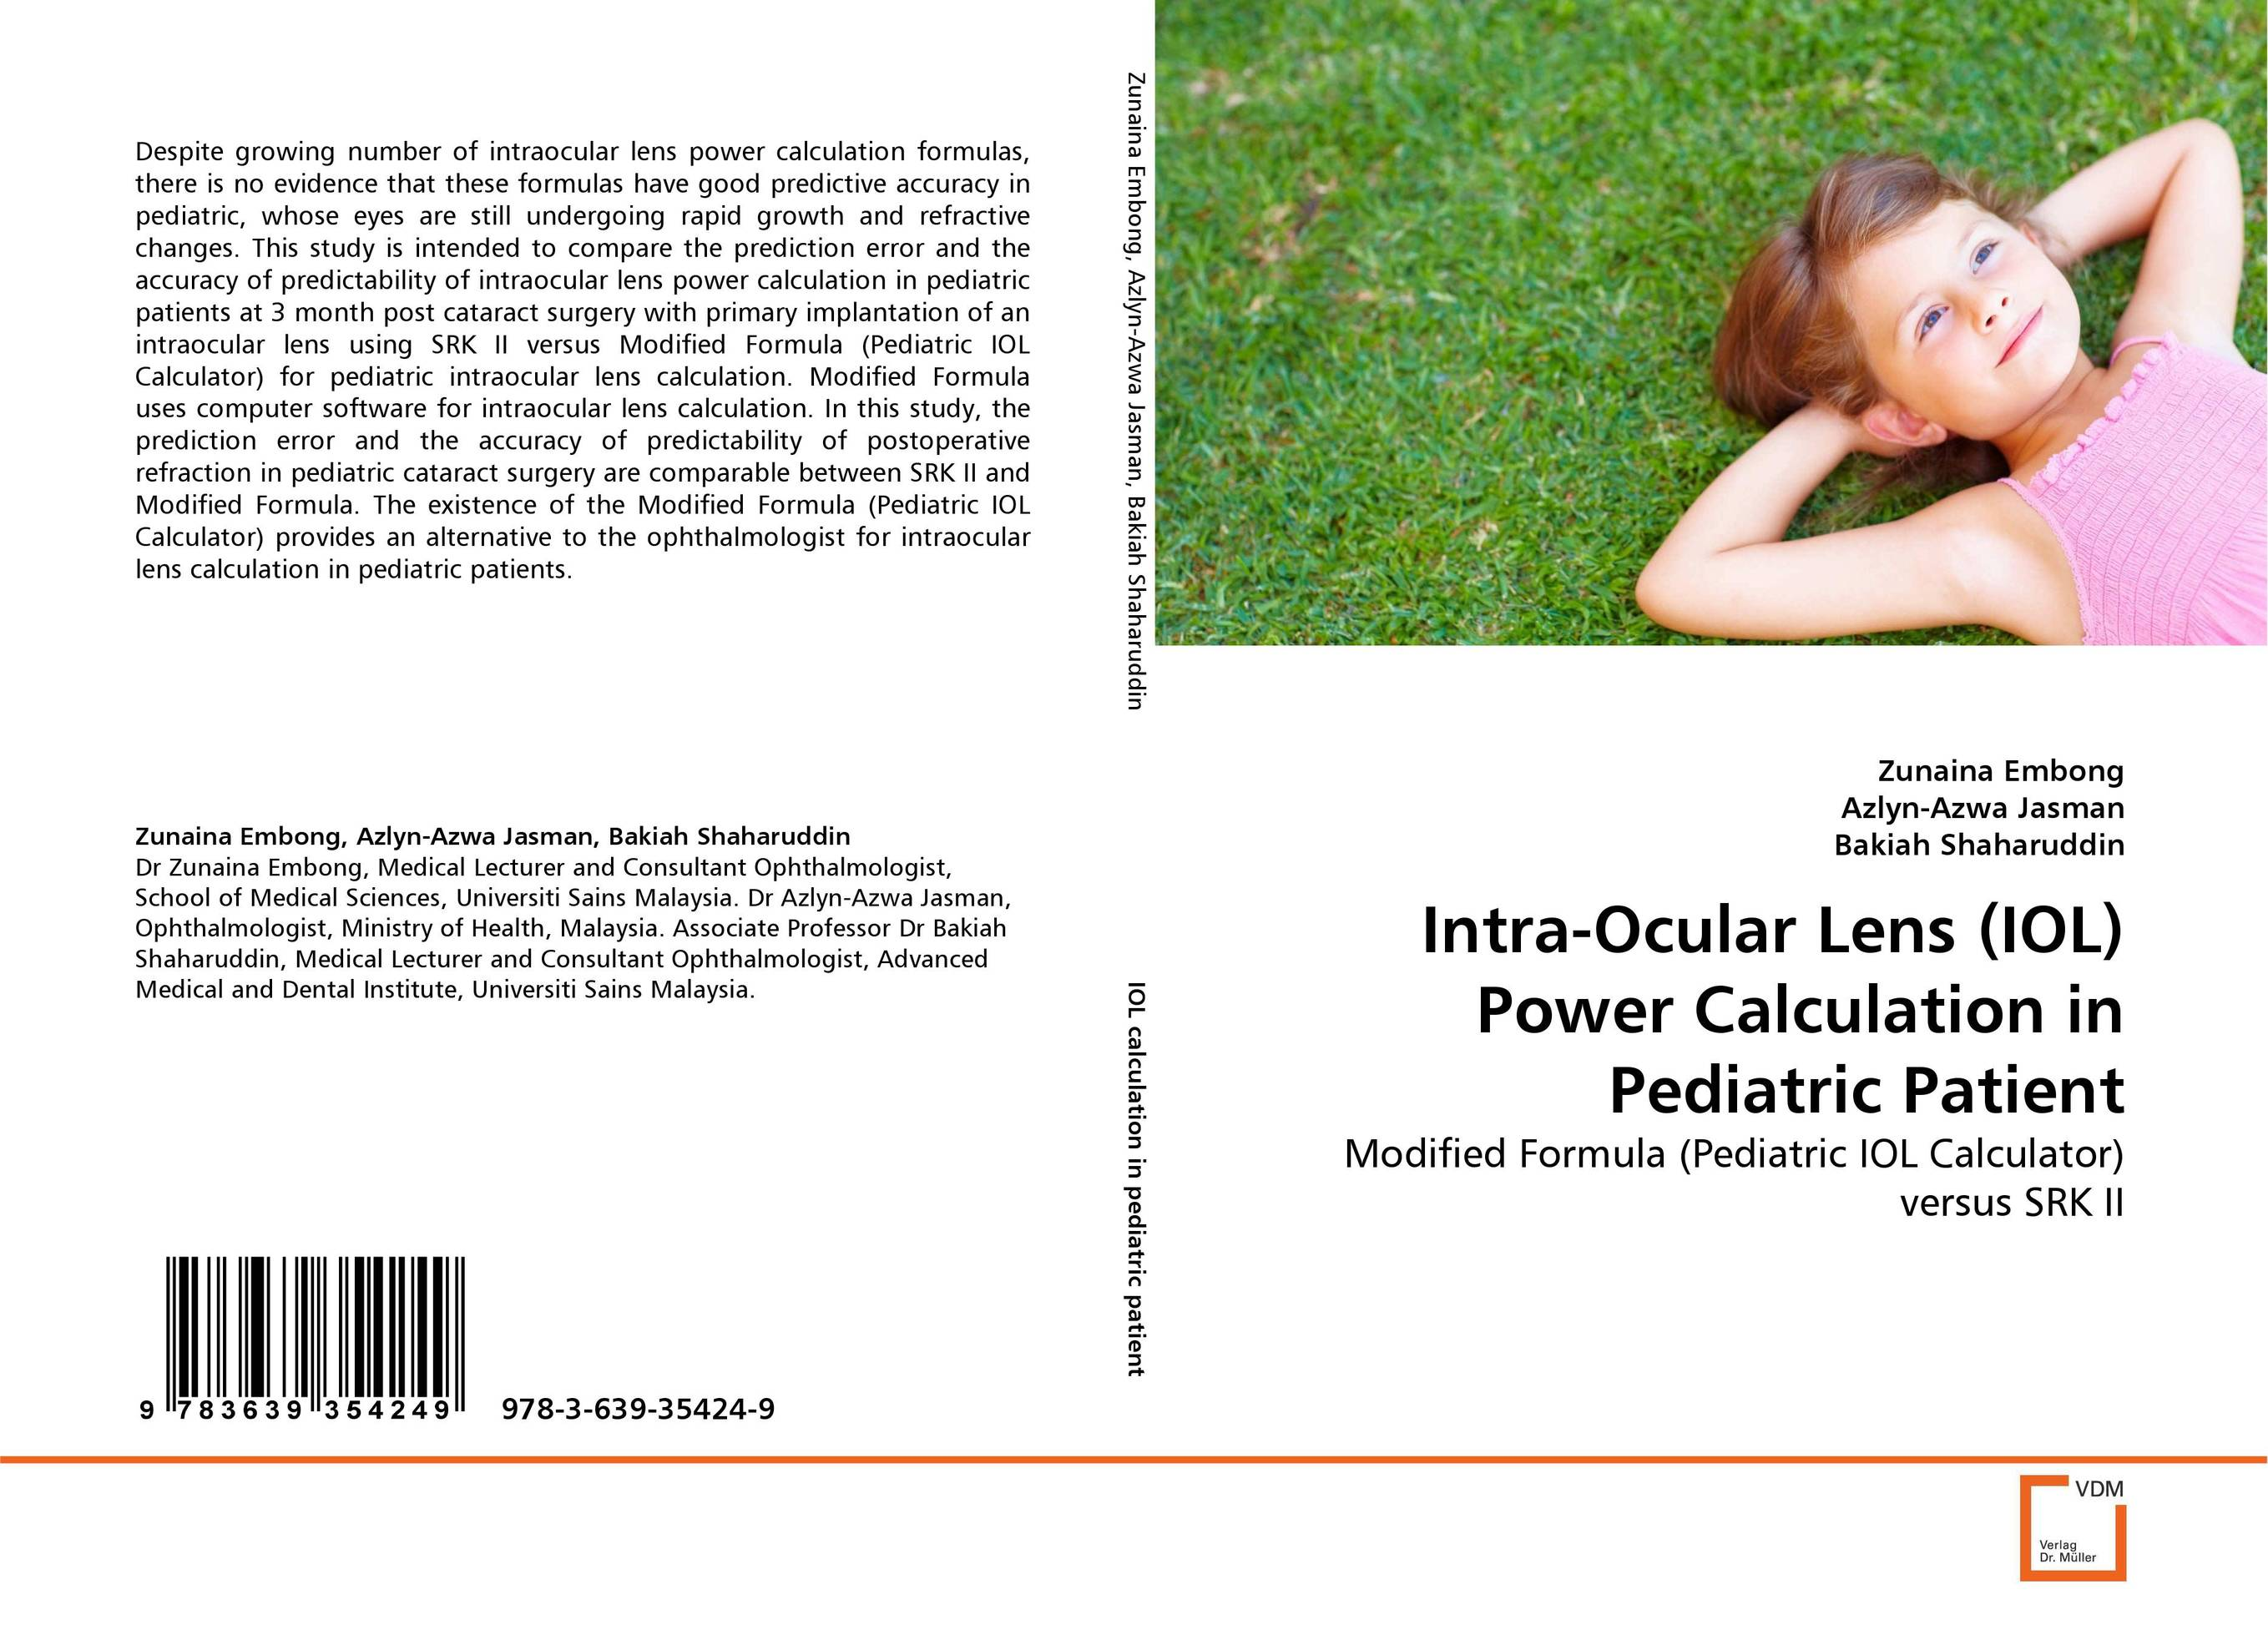 Intra-Ocular Lens (IOL) Power Calculation in Pediatric Patient